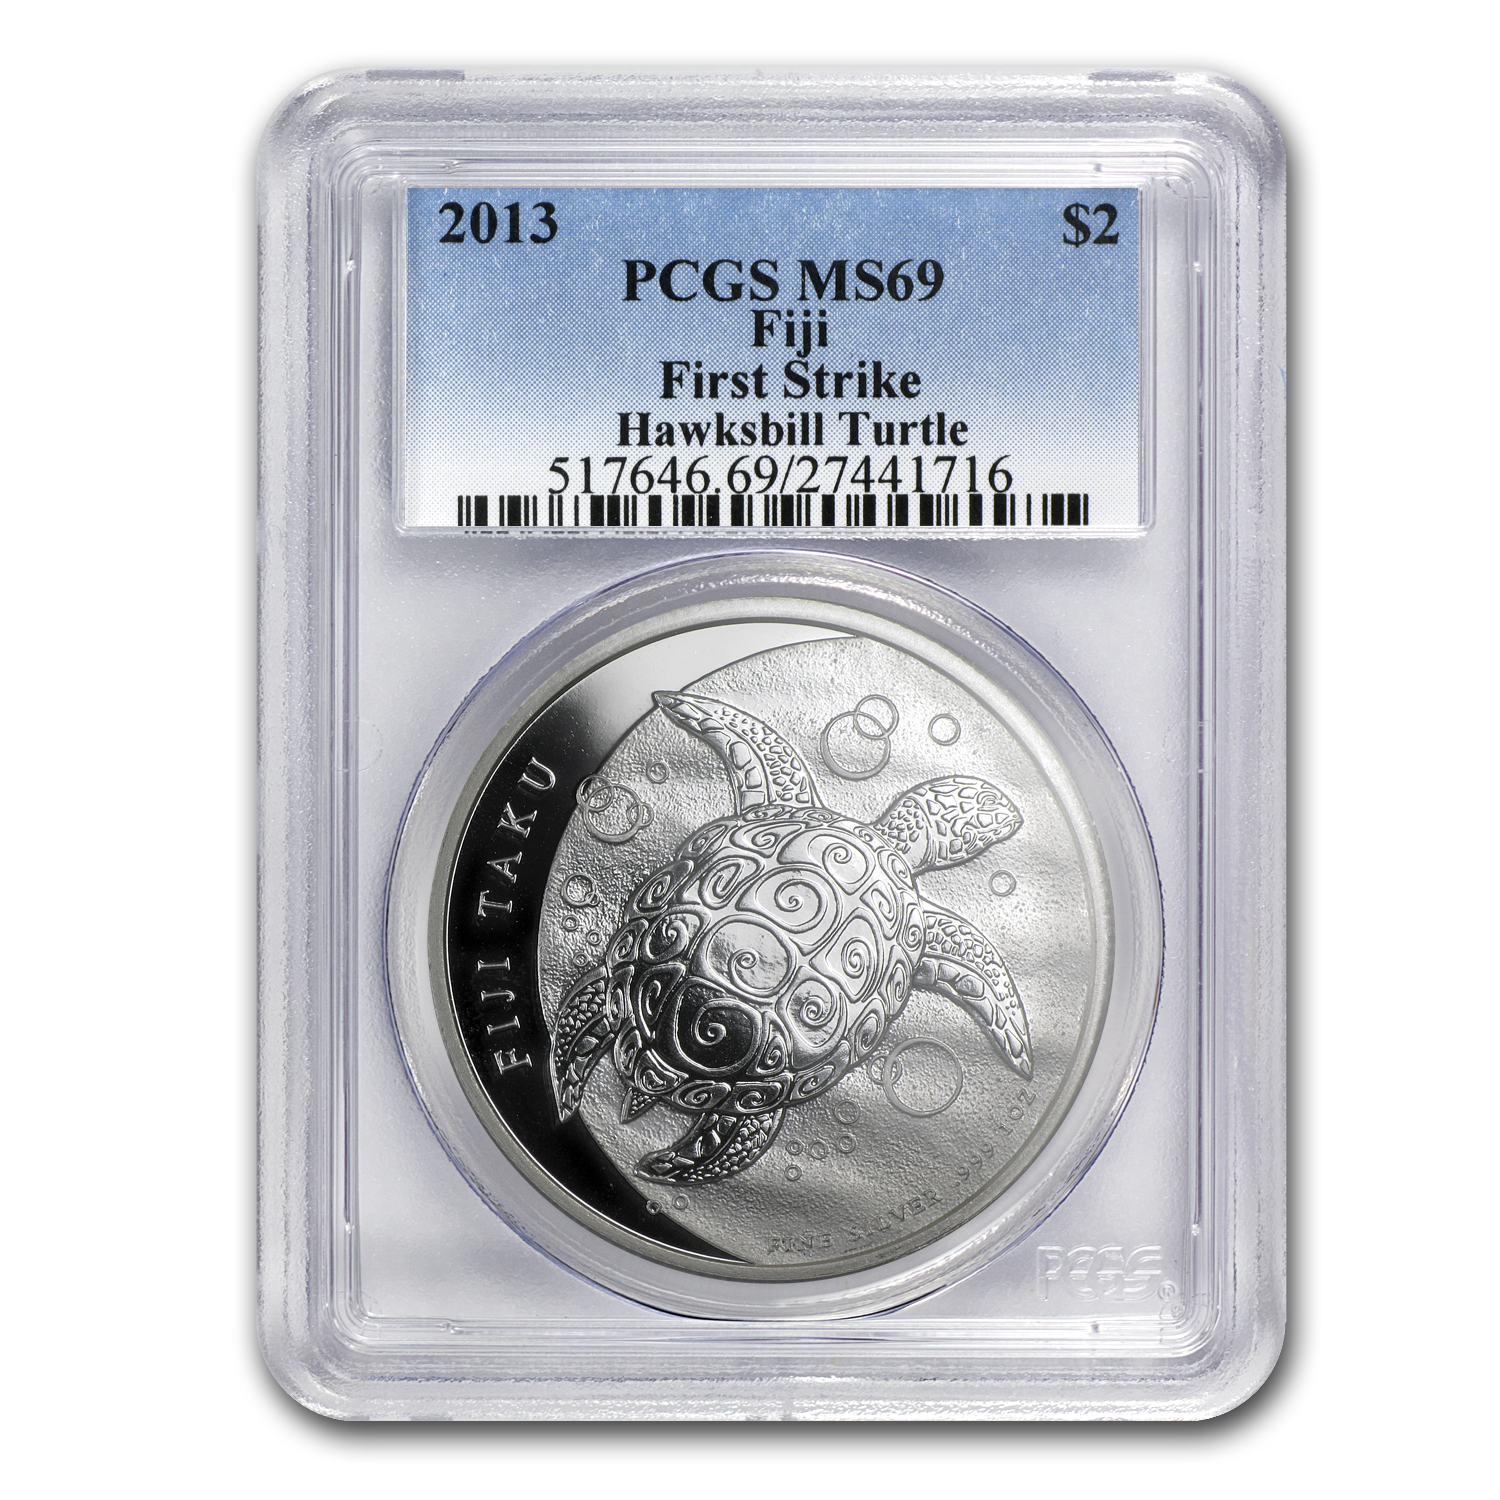 2013 1 oz Silver $2 Fiji Taku MS-69 PCGS (First Strike)